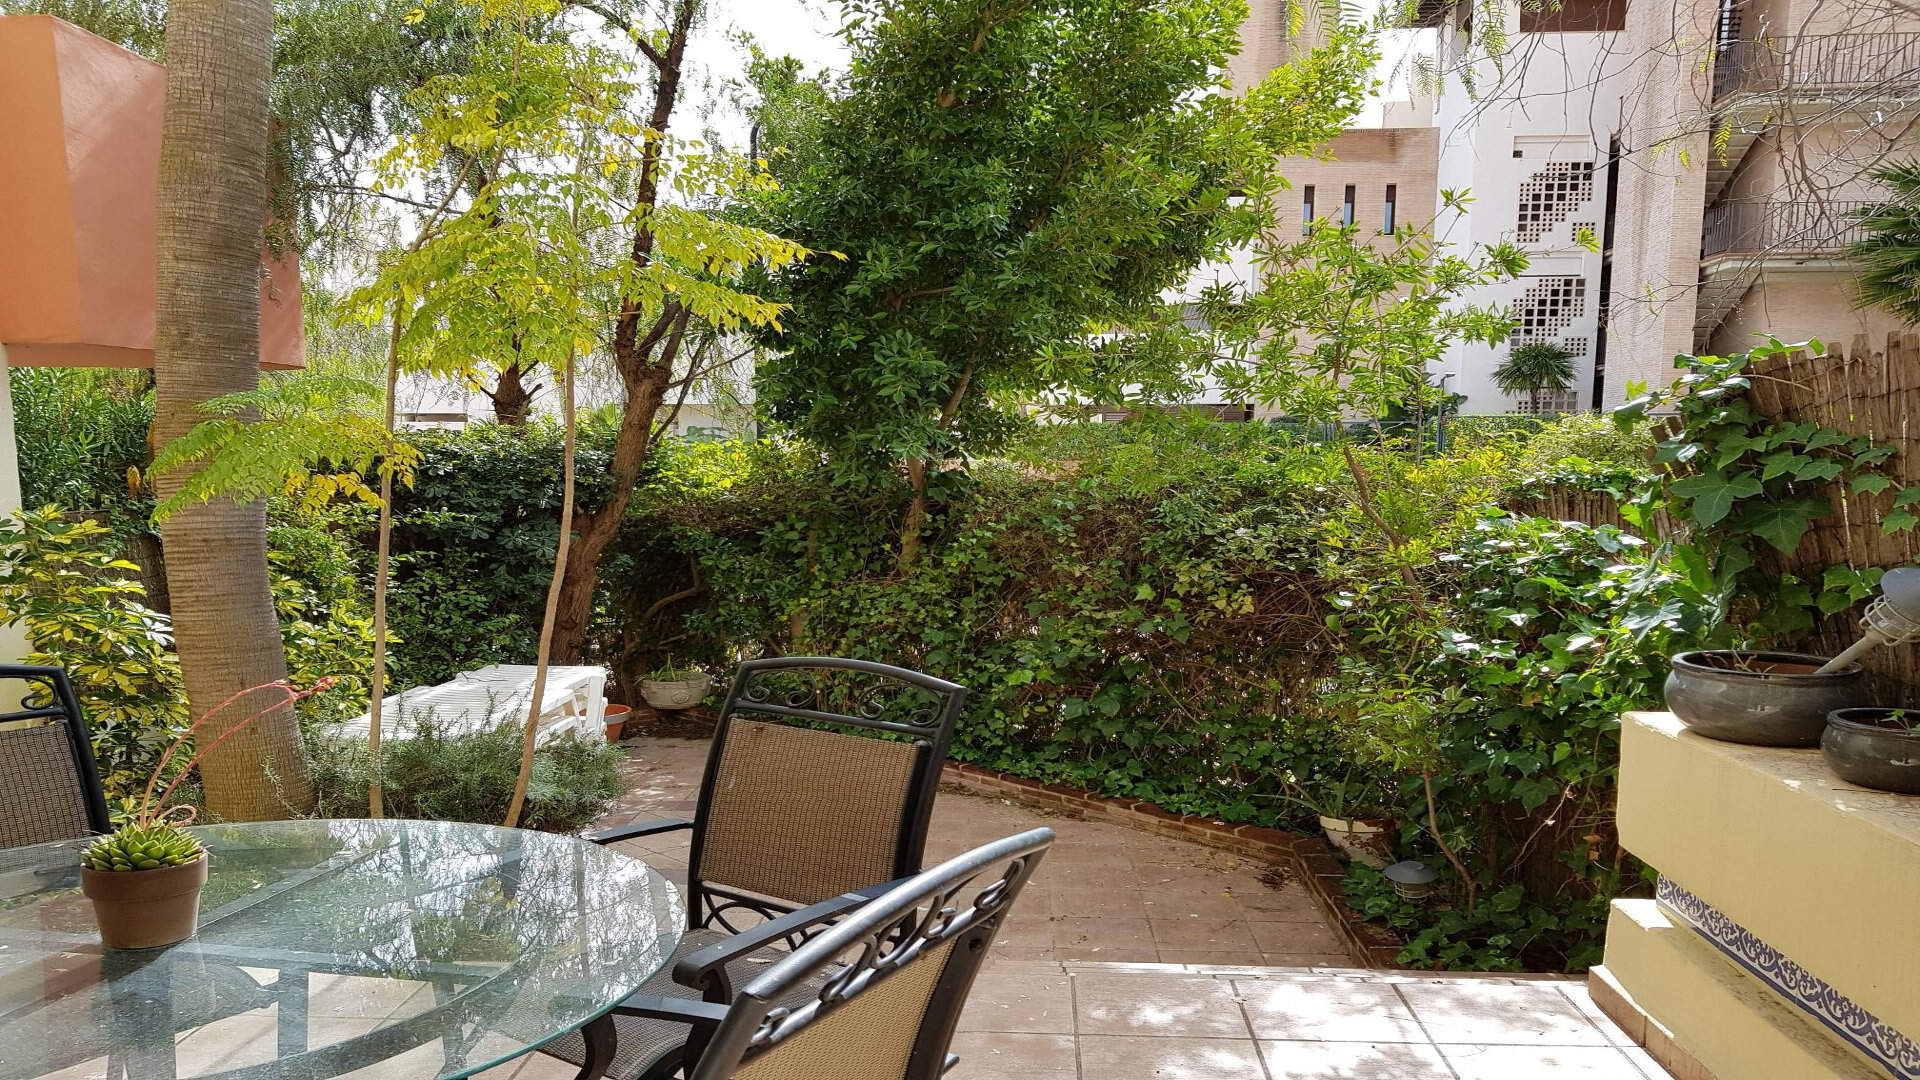 Garden Beach townhouse Estepona for sale close to town • Realista